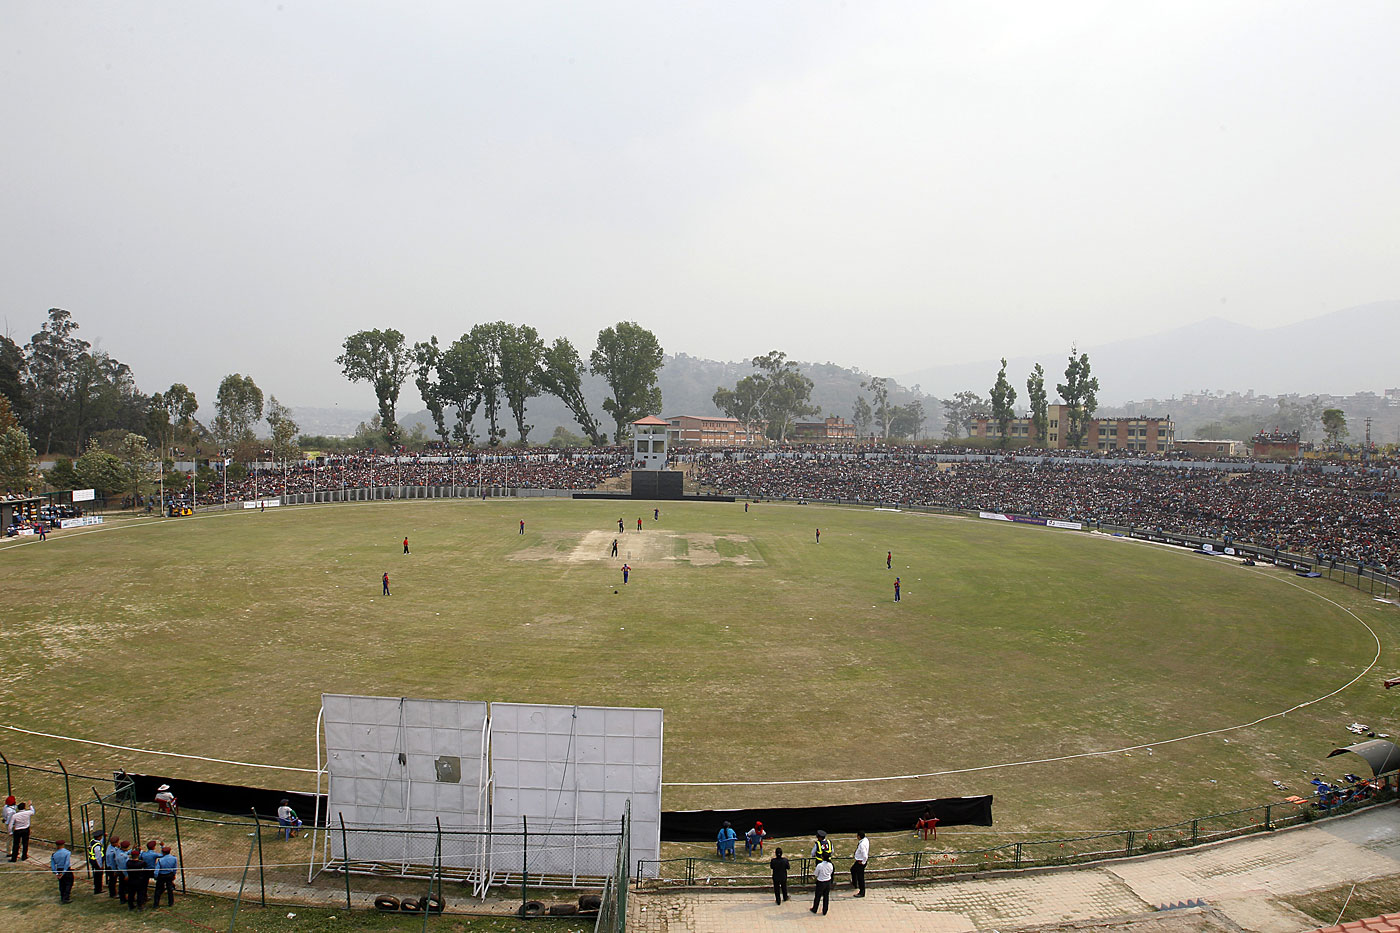 Kathmandu hosted two games of the WCL Championship in April. Nepal beat Namibia in both, in front of packed crowds